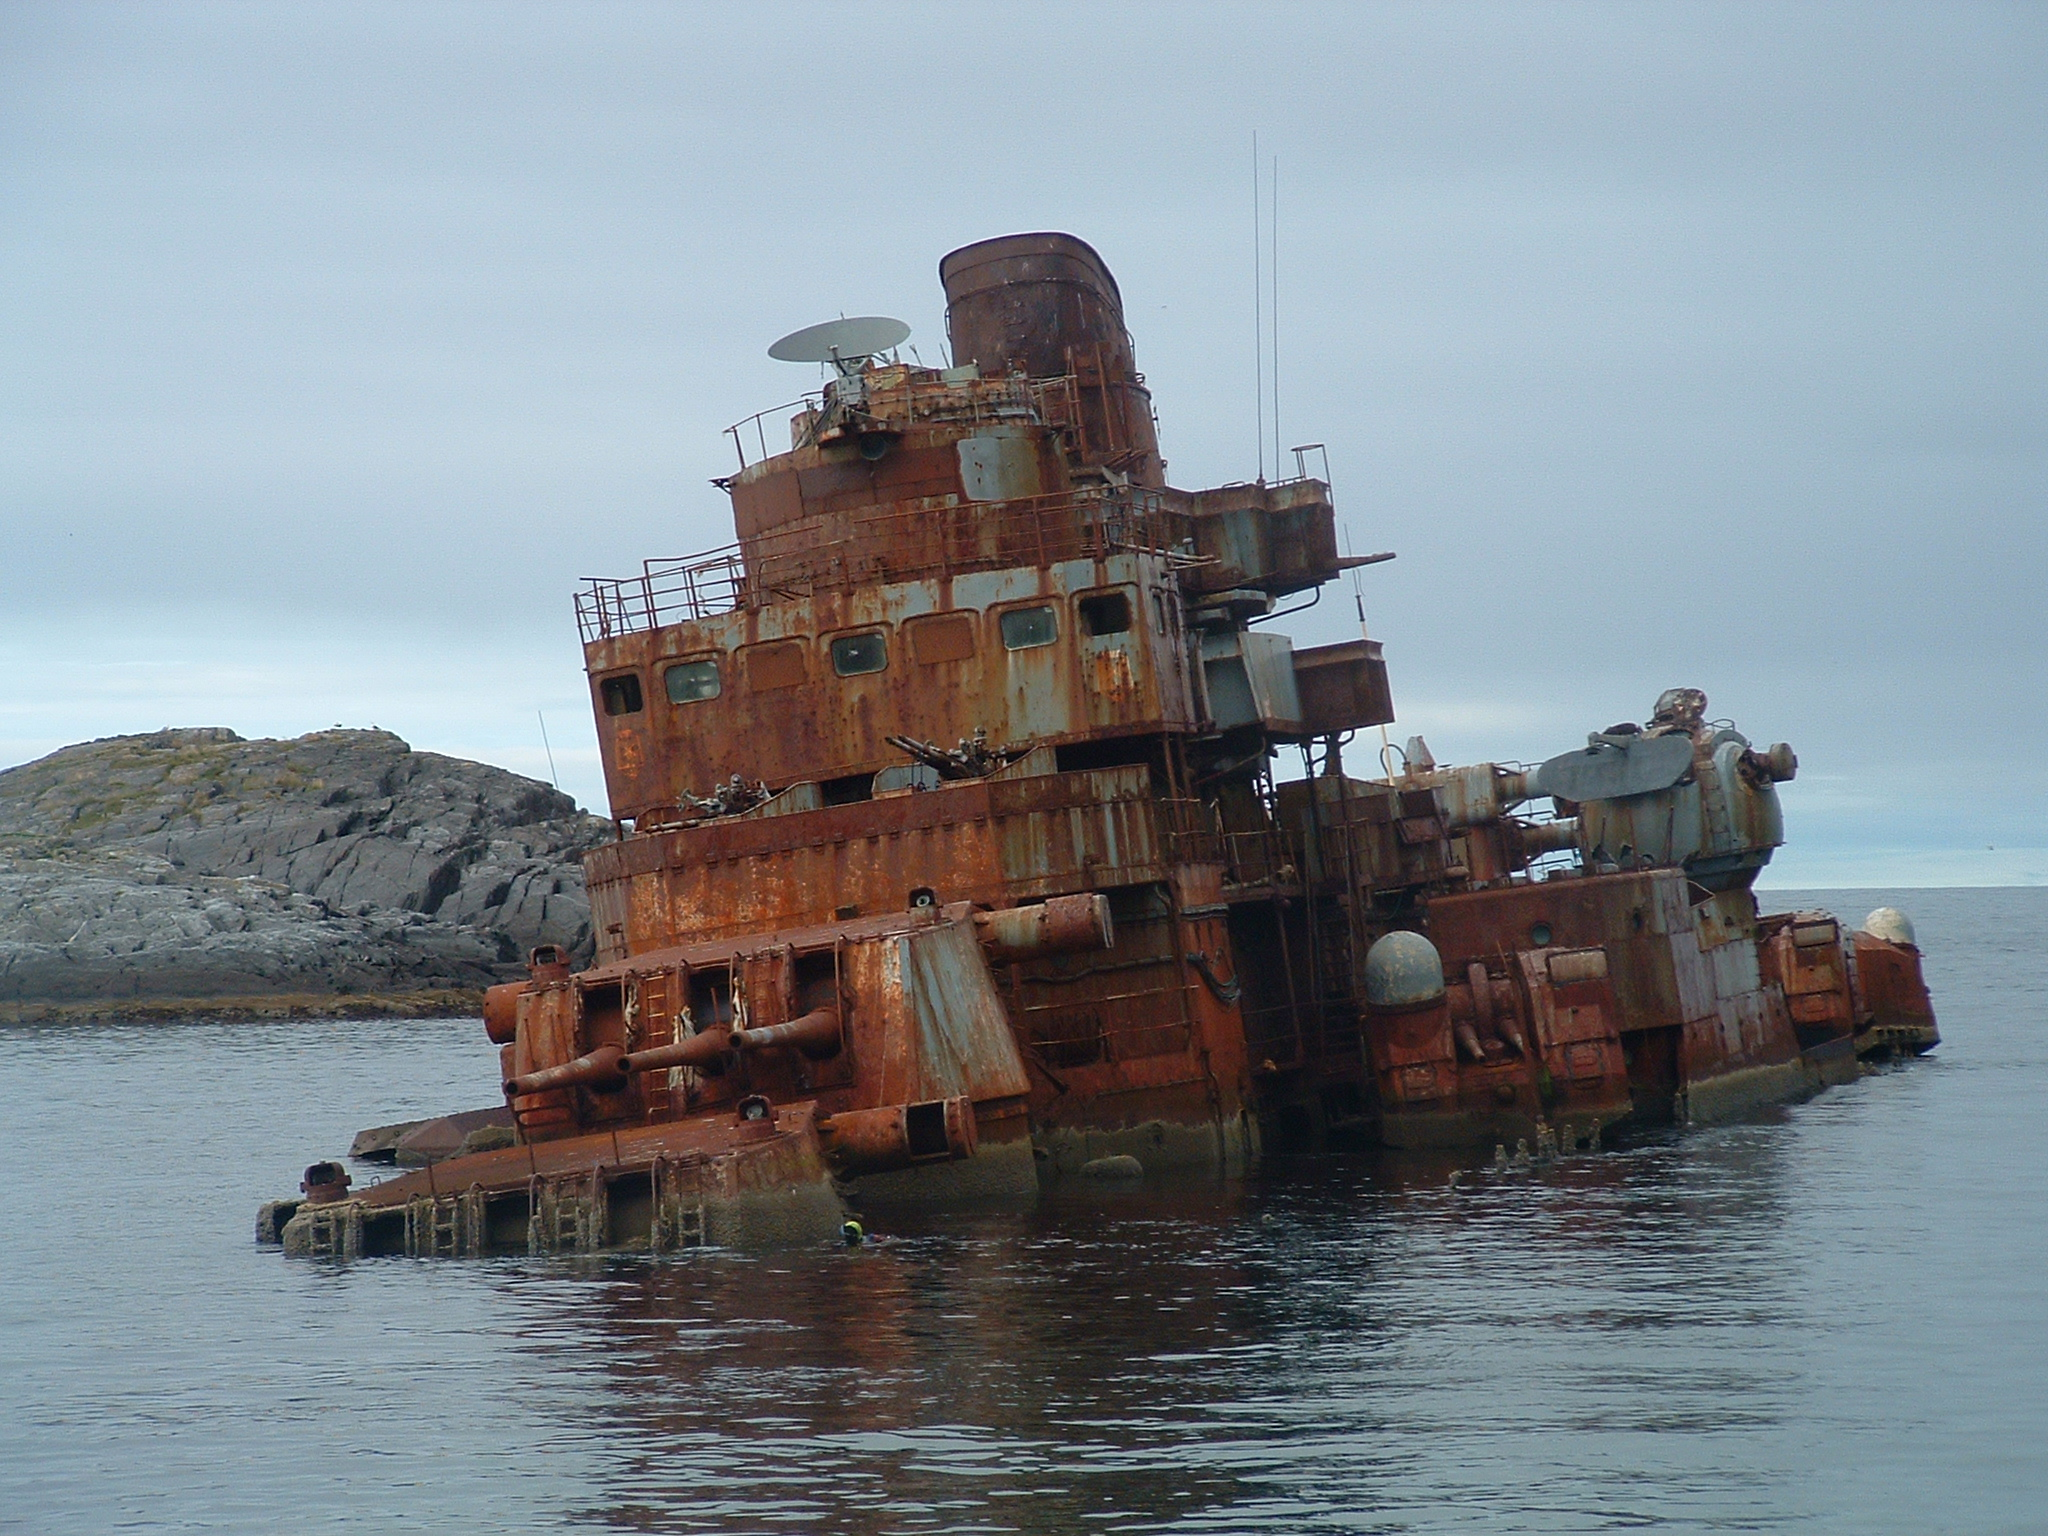 The stranded Murmansk before being dismantled